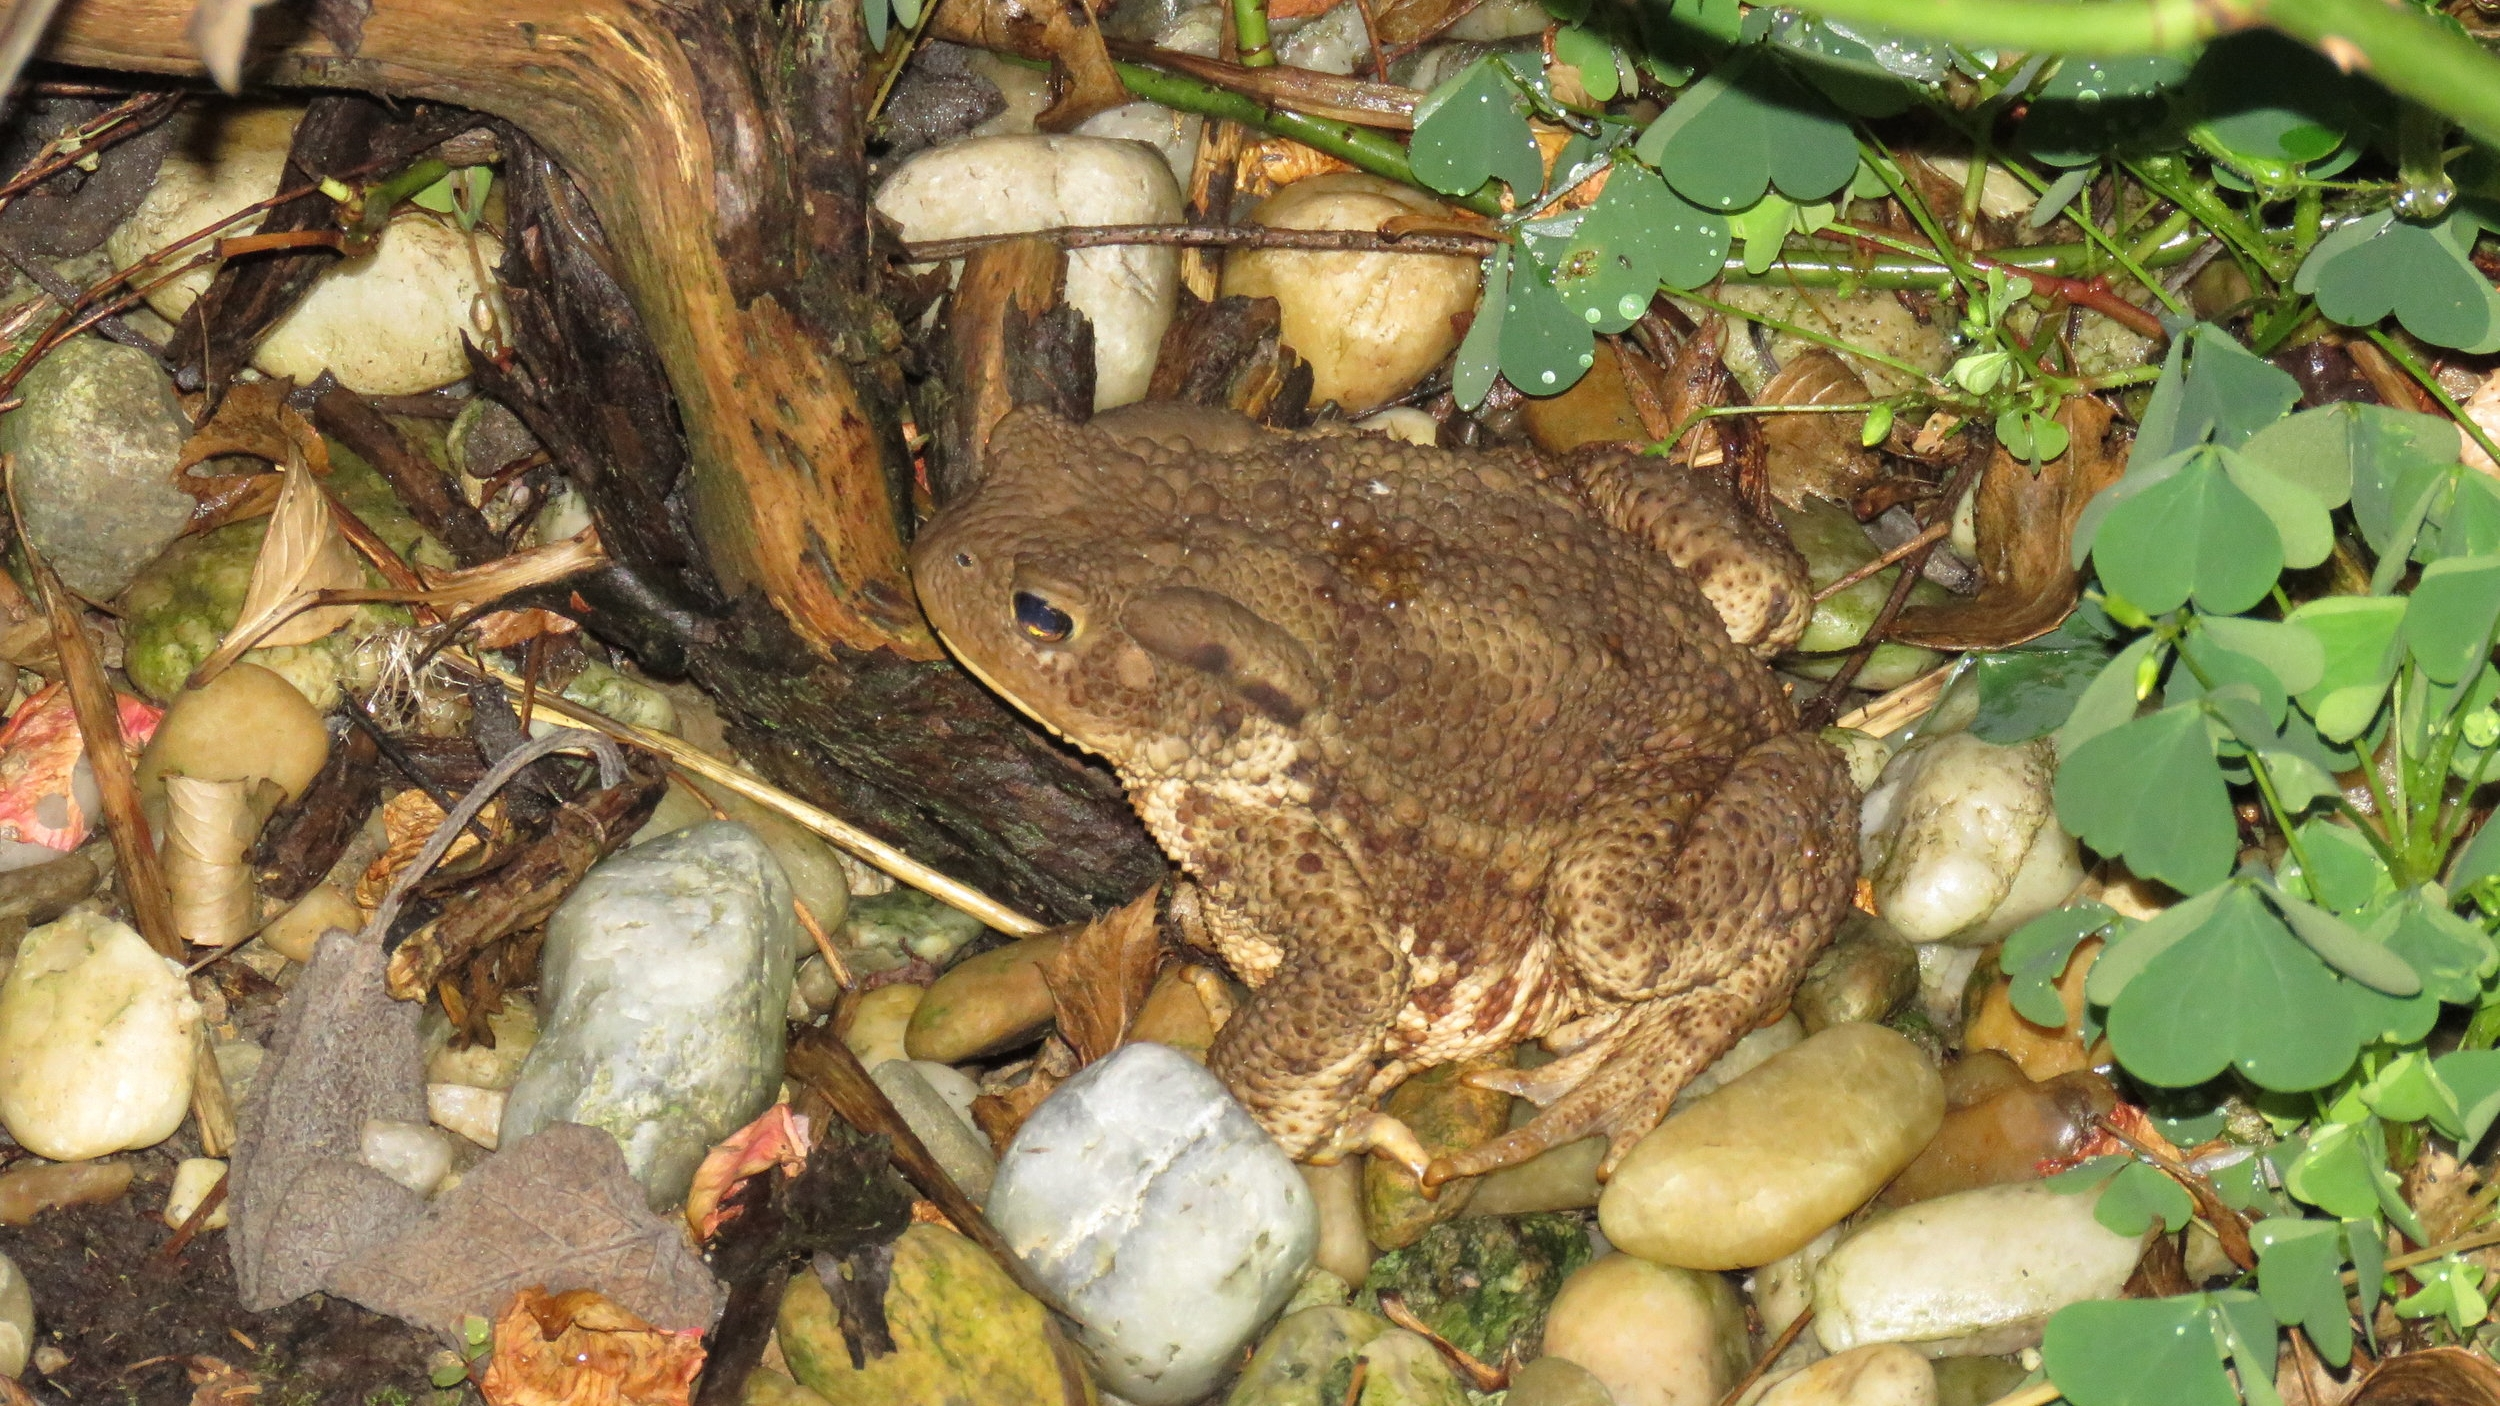 Common Toad (Bufo bufo) found in Krizevci, Slovenia | Photograph by Talita Bateman